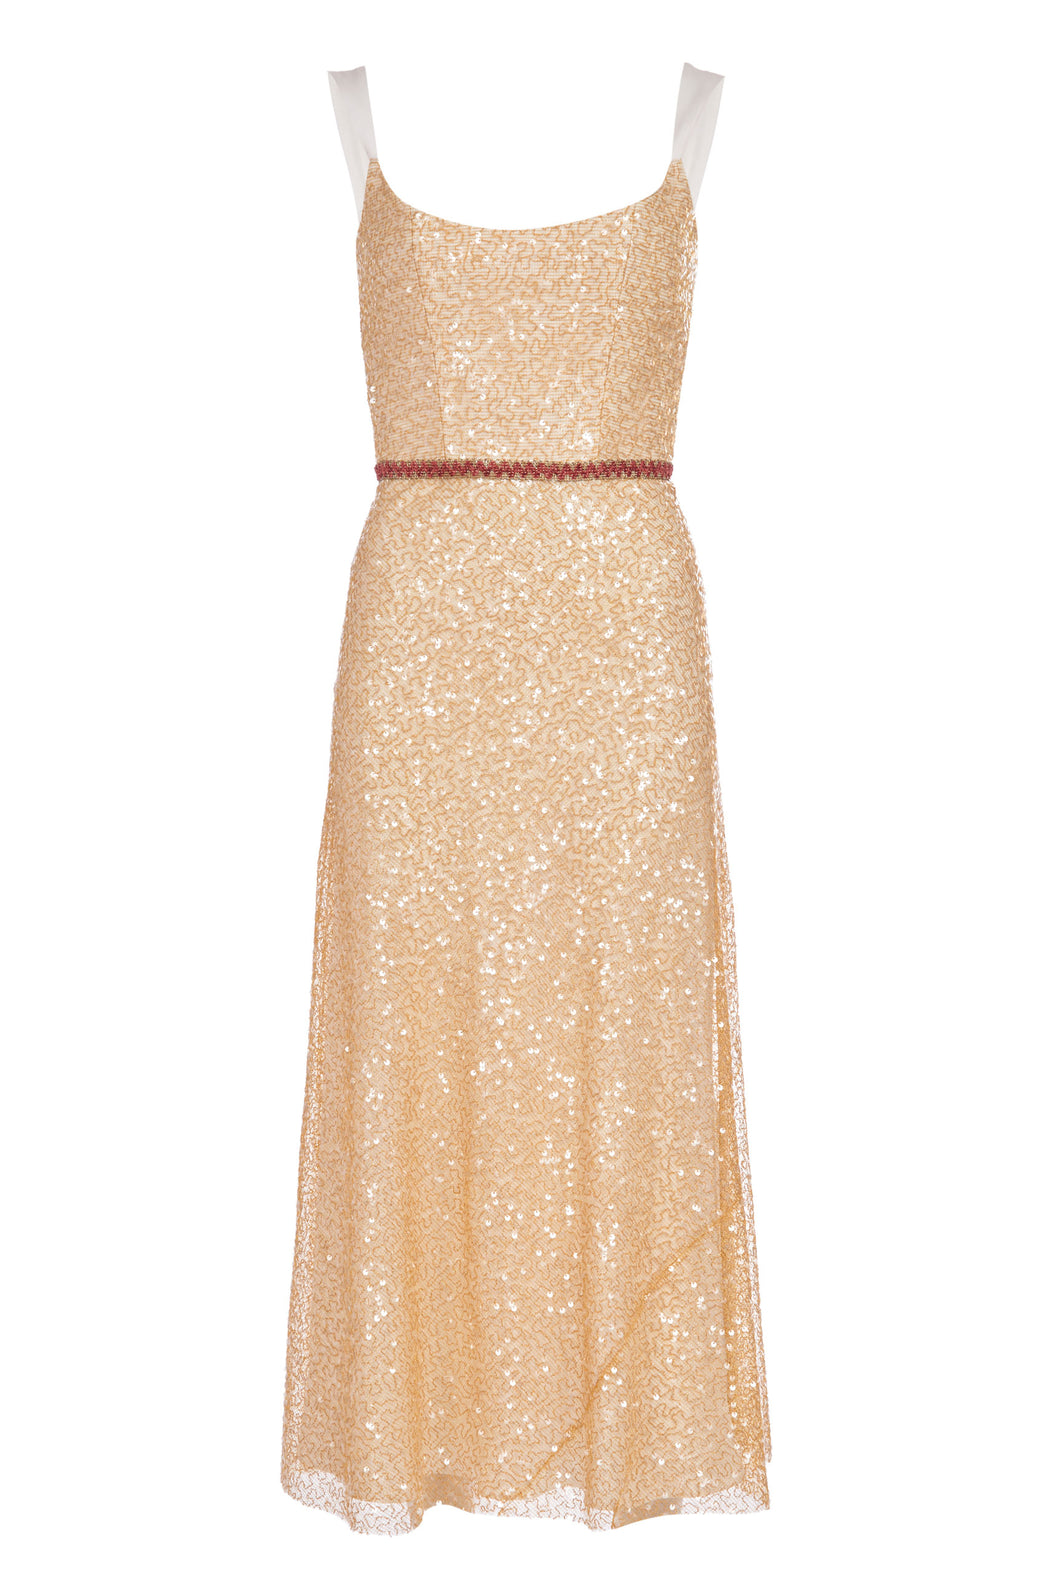 Paoloma Gold Sequin Bias Corset Midi Dress